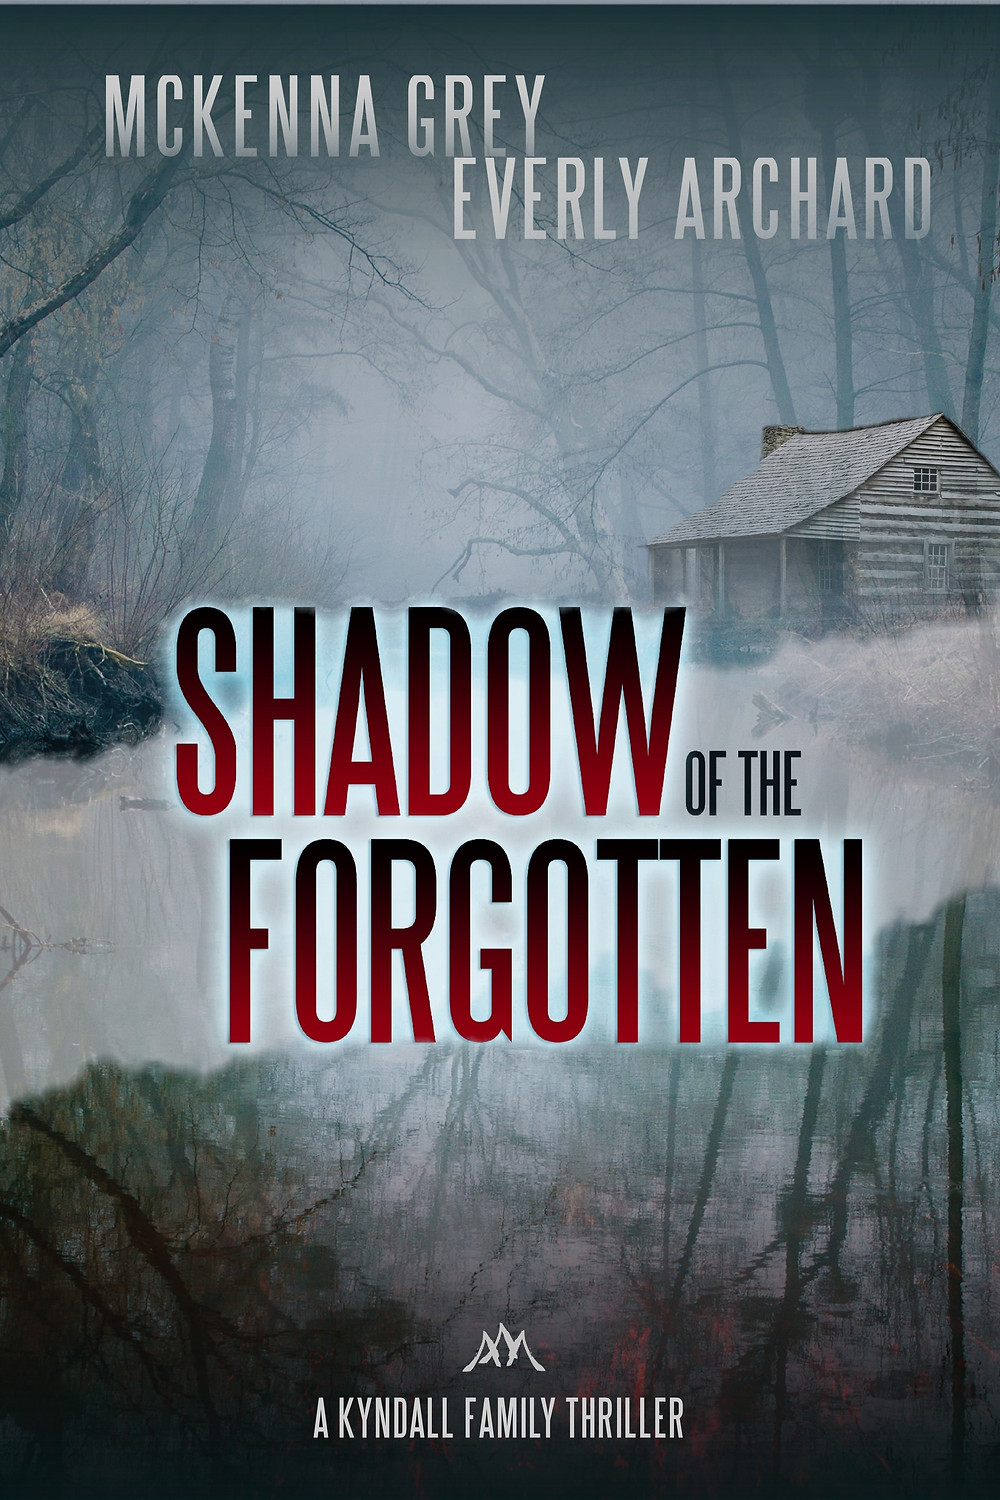 Shadow of the Forgotten by McKenna Grey and Everly Archard